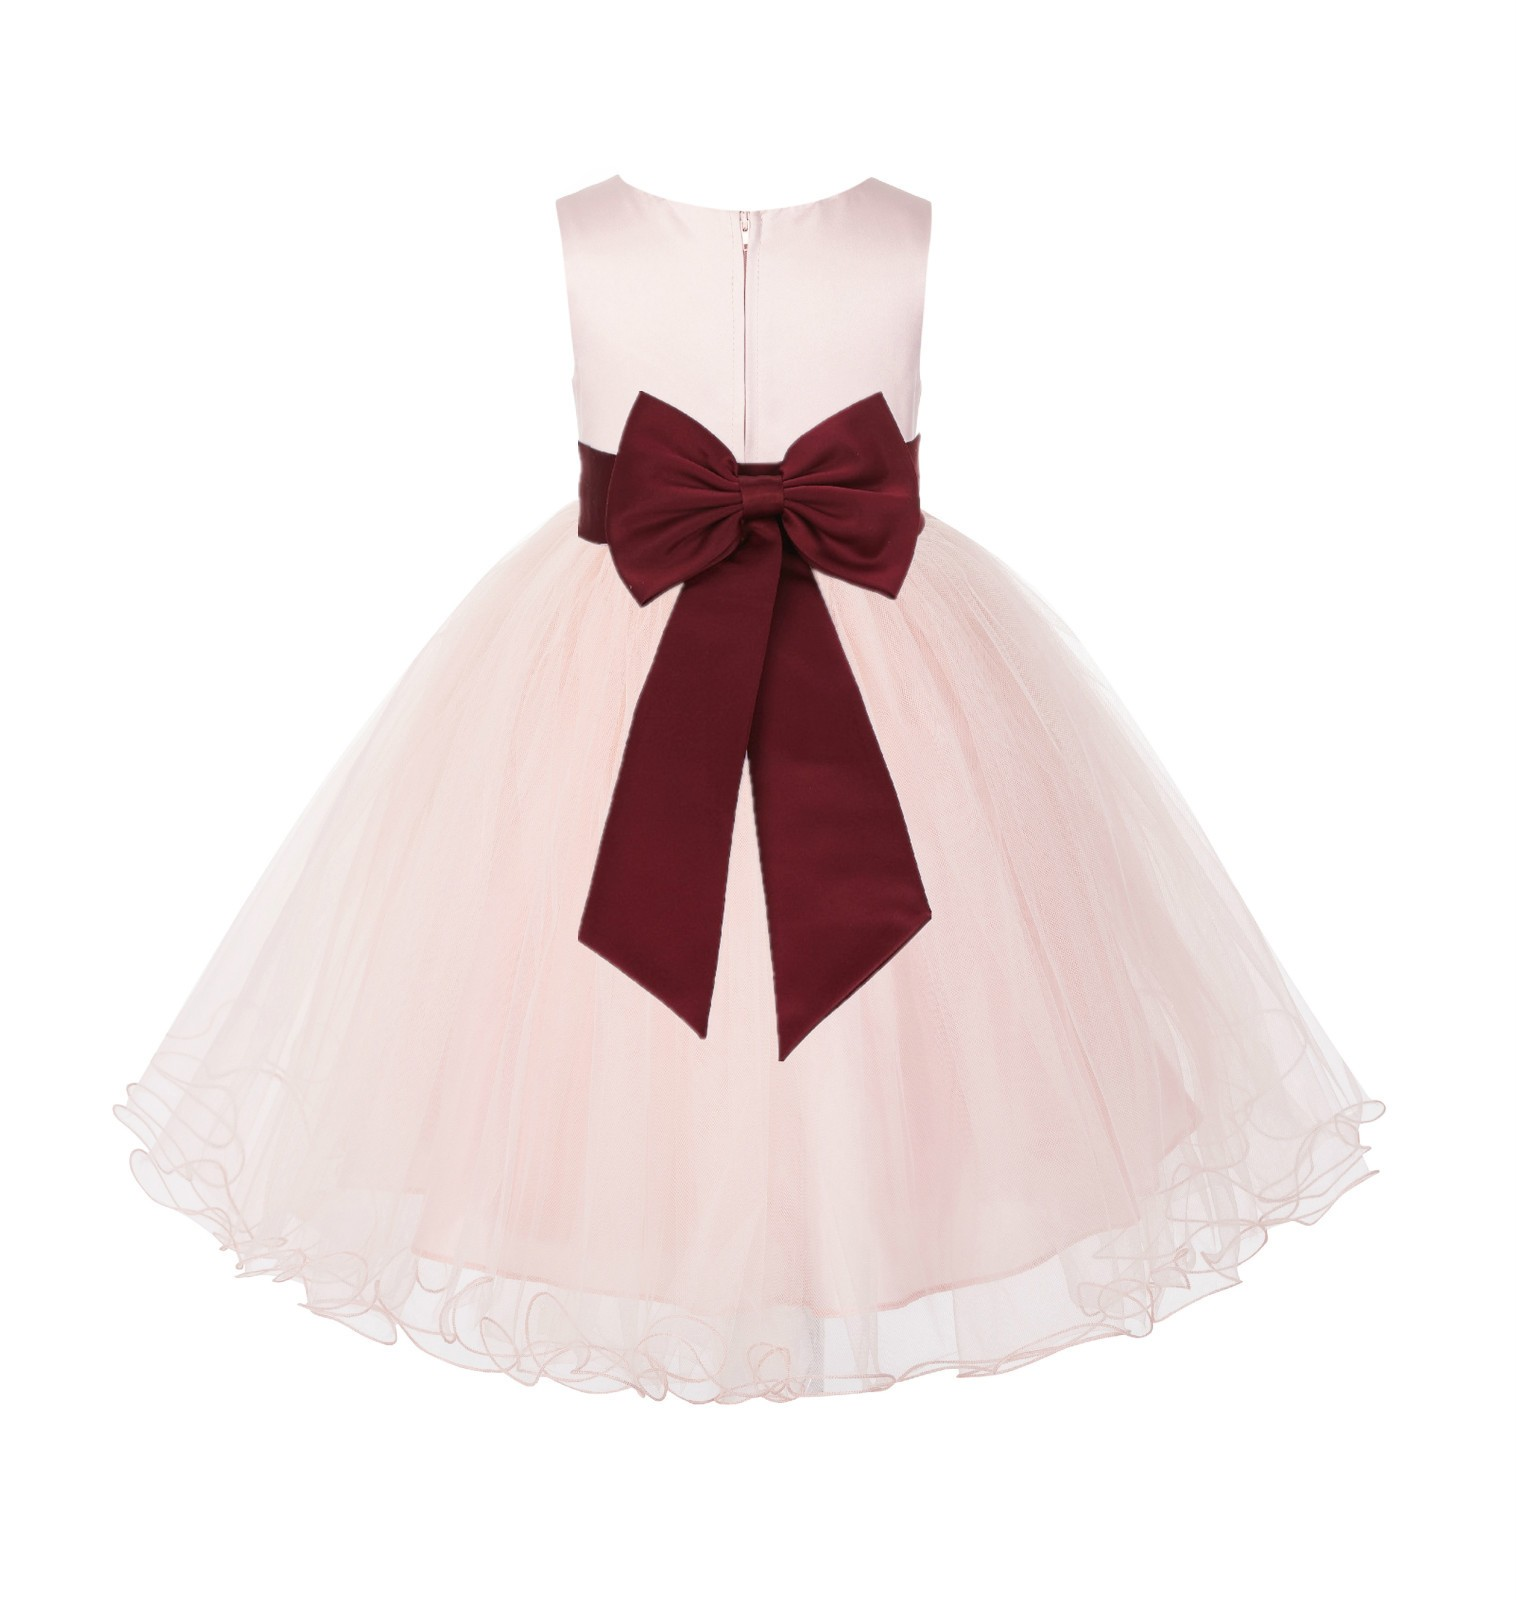 Blush PInk / Burgundy Tulle Rattail Edge Flower Girl Dress Wedding Bridesmaid 829T